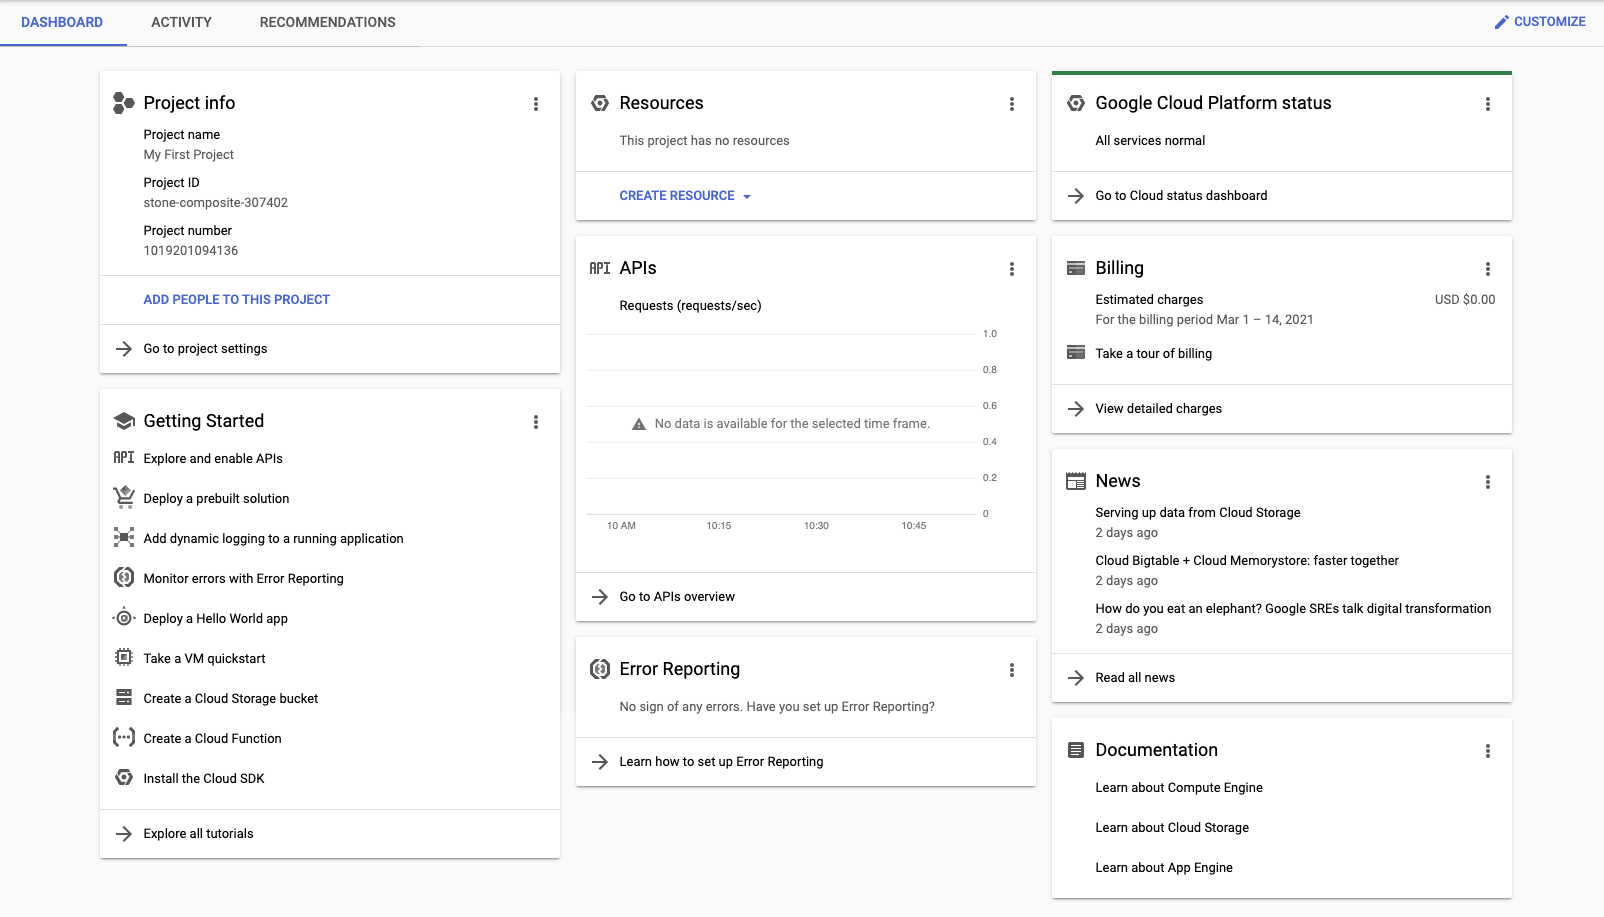 The dashboard provides several customizable widgets that provide you with data related to both the selected project and Google Cloud. Links to Google documentation are also available on the dashboard